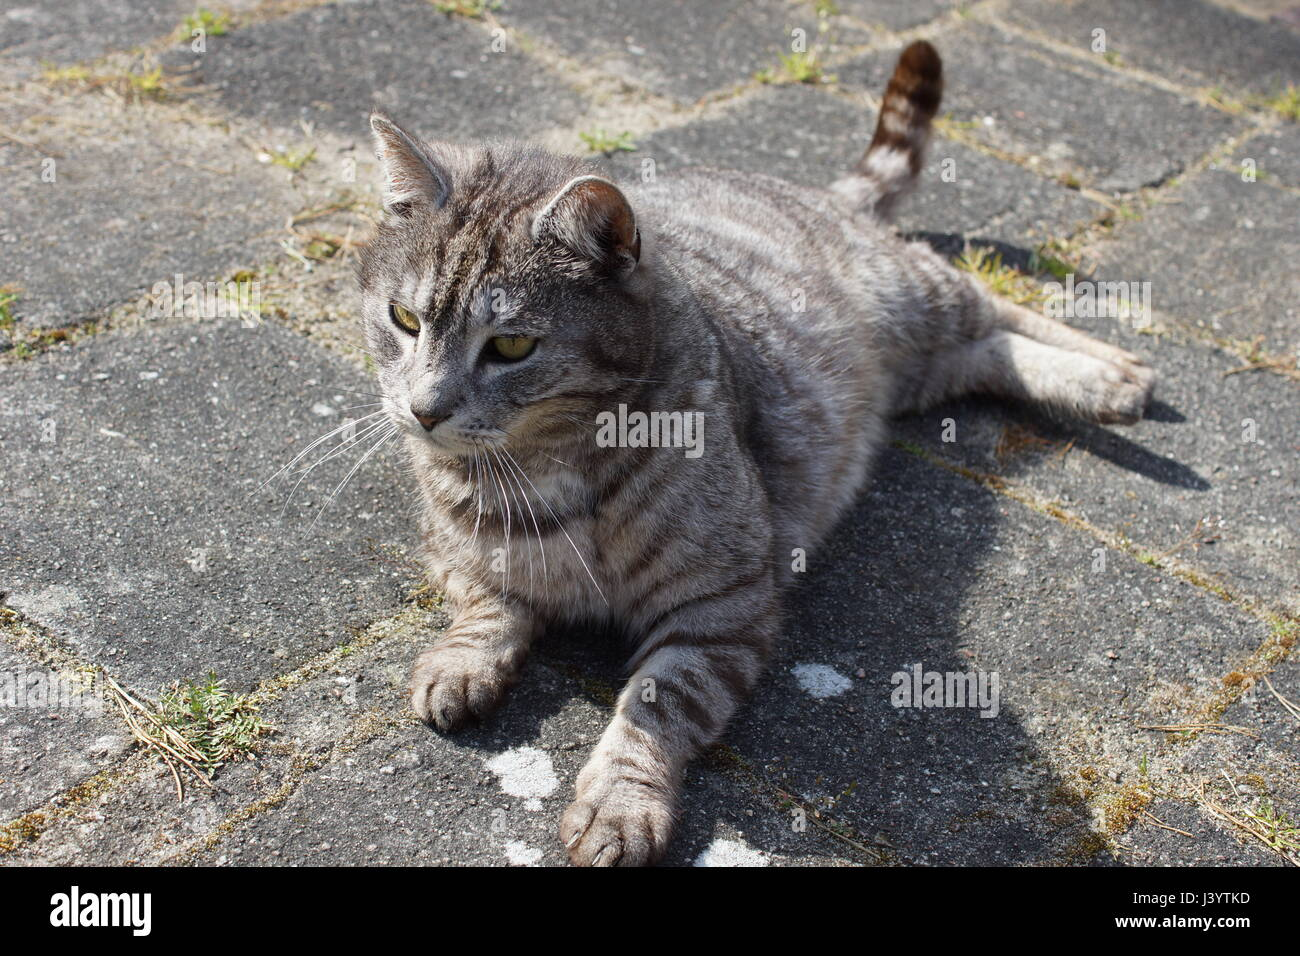 Homeless cat in nature - Stock Image